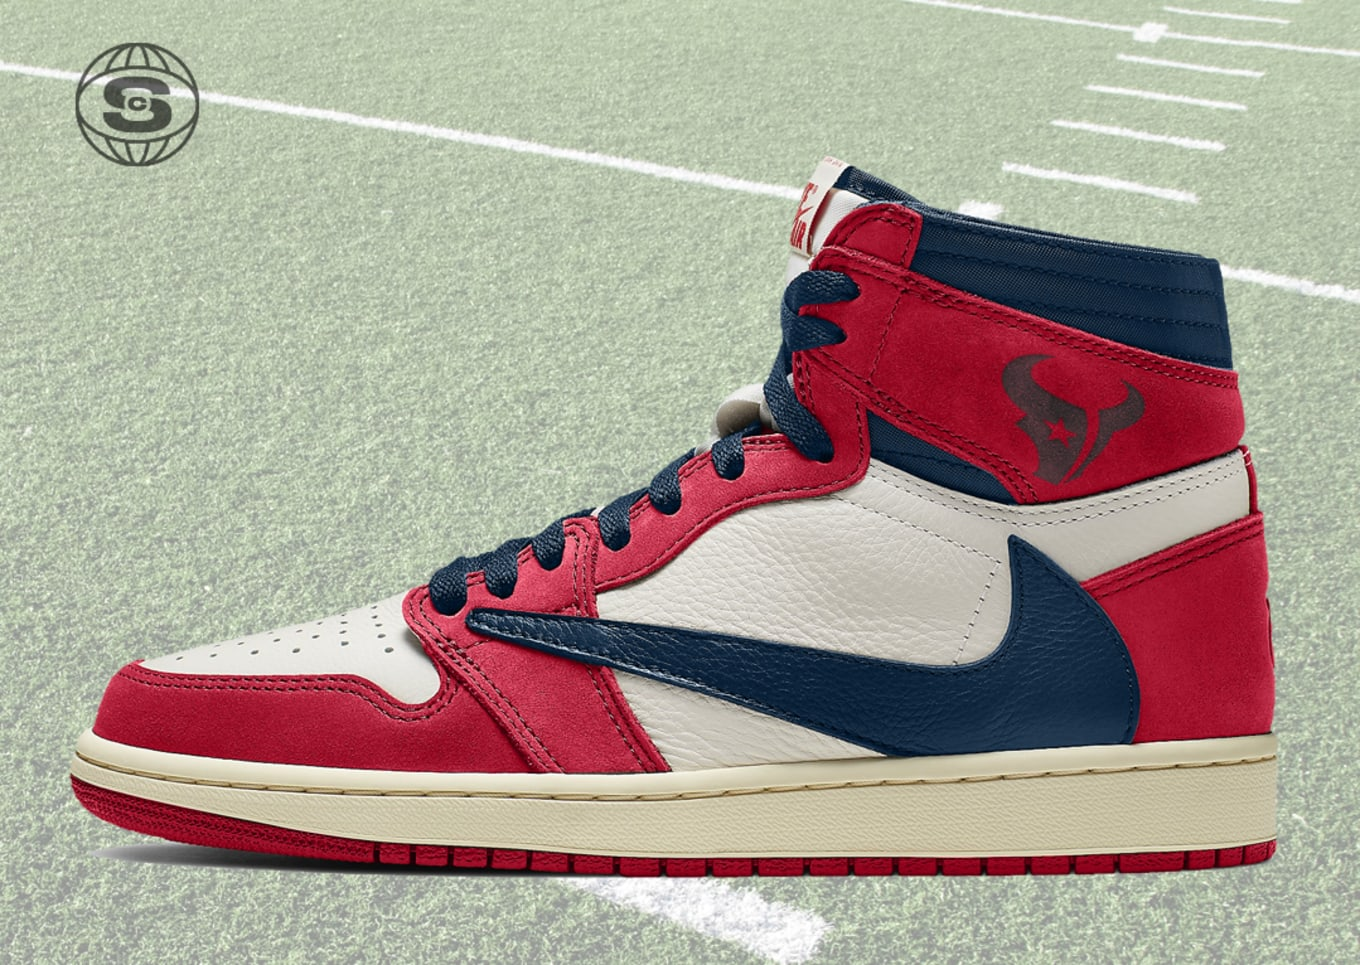 on sale c8354 df895 Sneakers Inspired by NFL Teams | Sole Collector